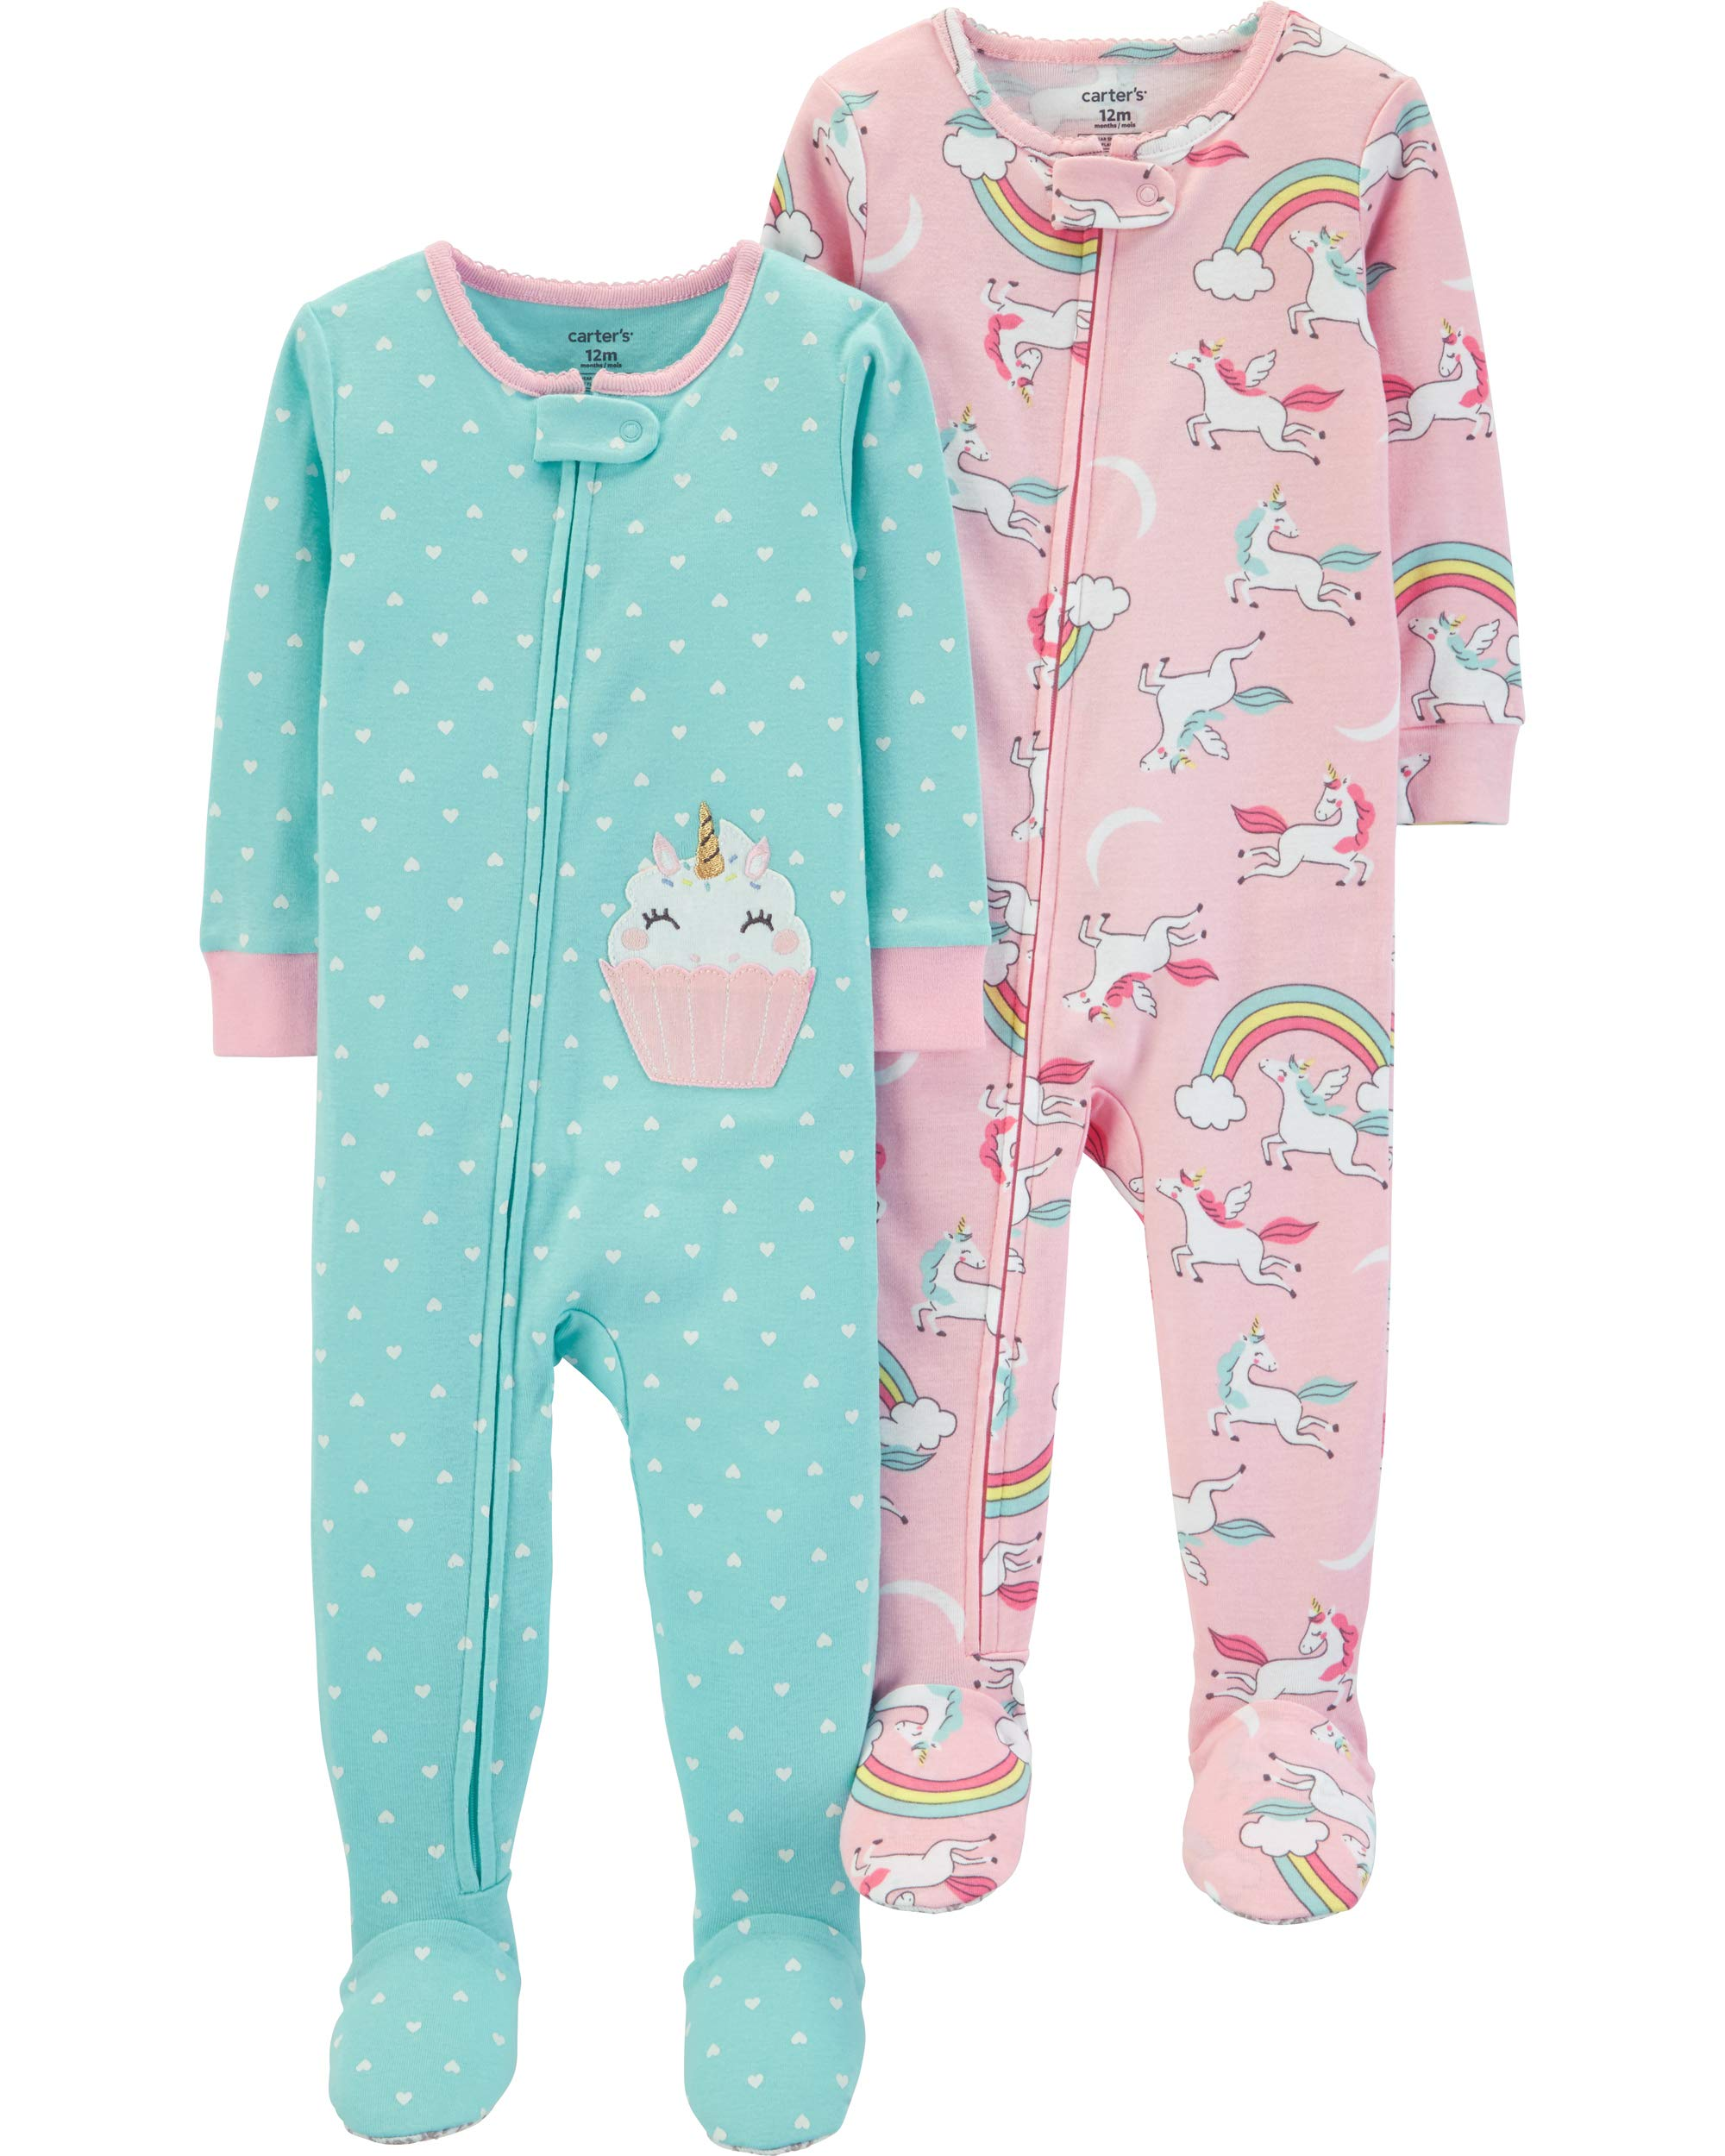 Carter's Girls' Toddler 2-Pack Cotton Footed Pajamas, Unicorn/Cupcake, 3T by Carter's